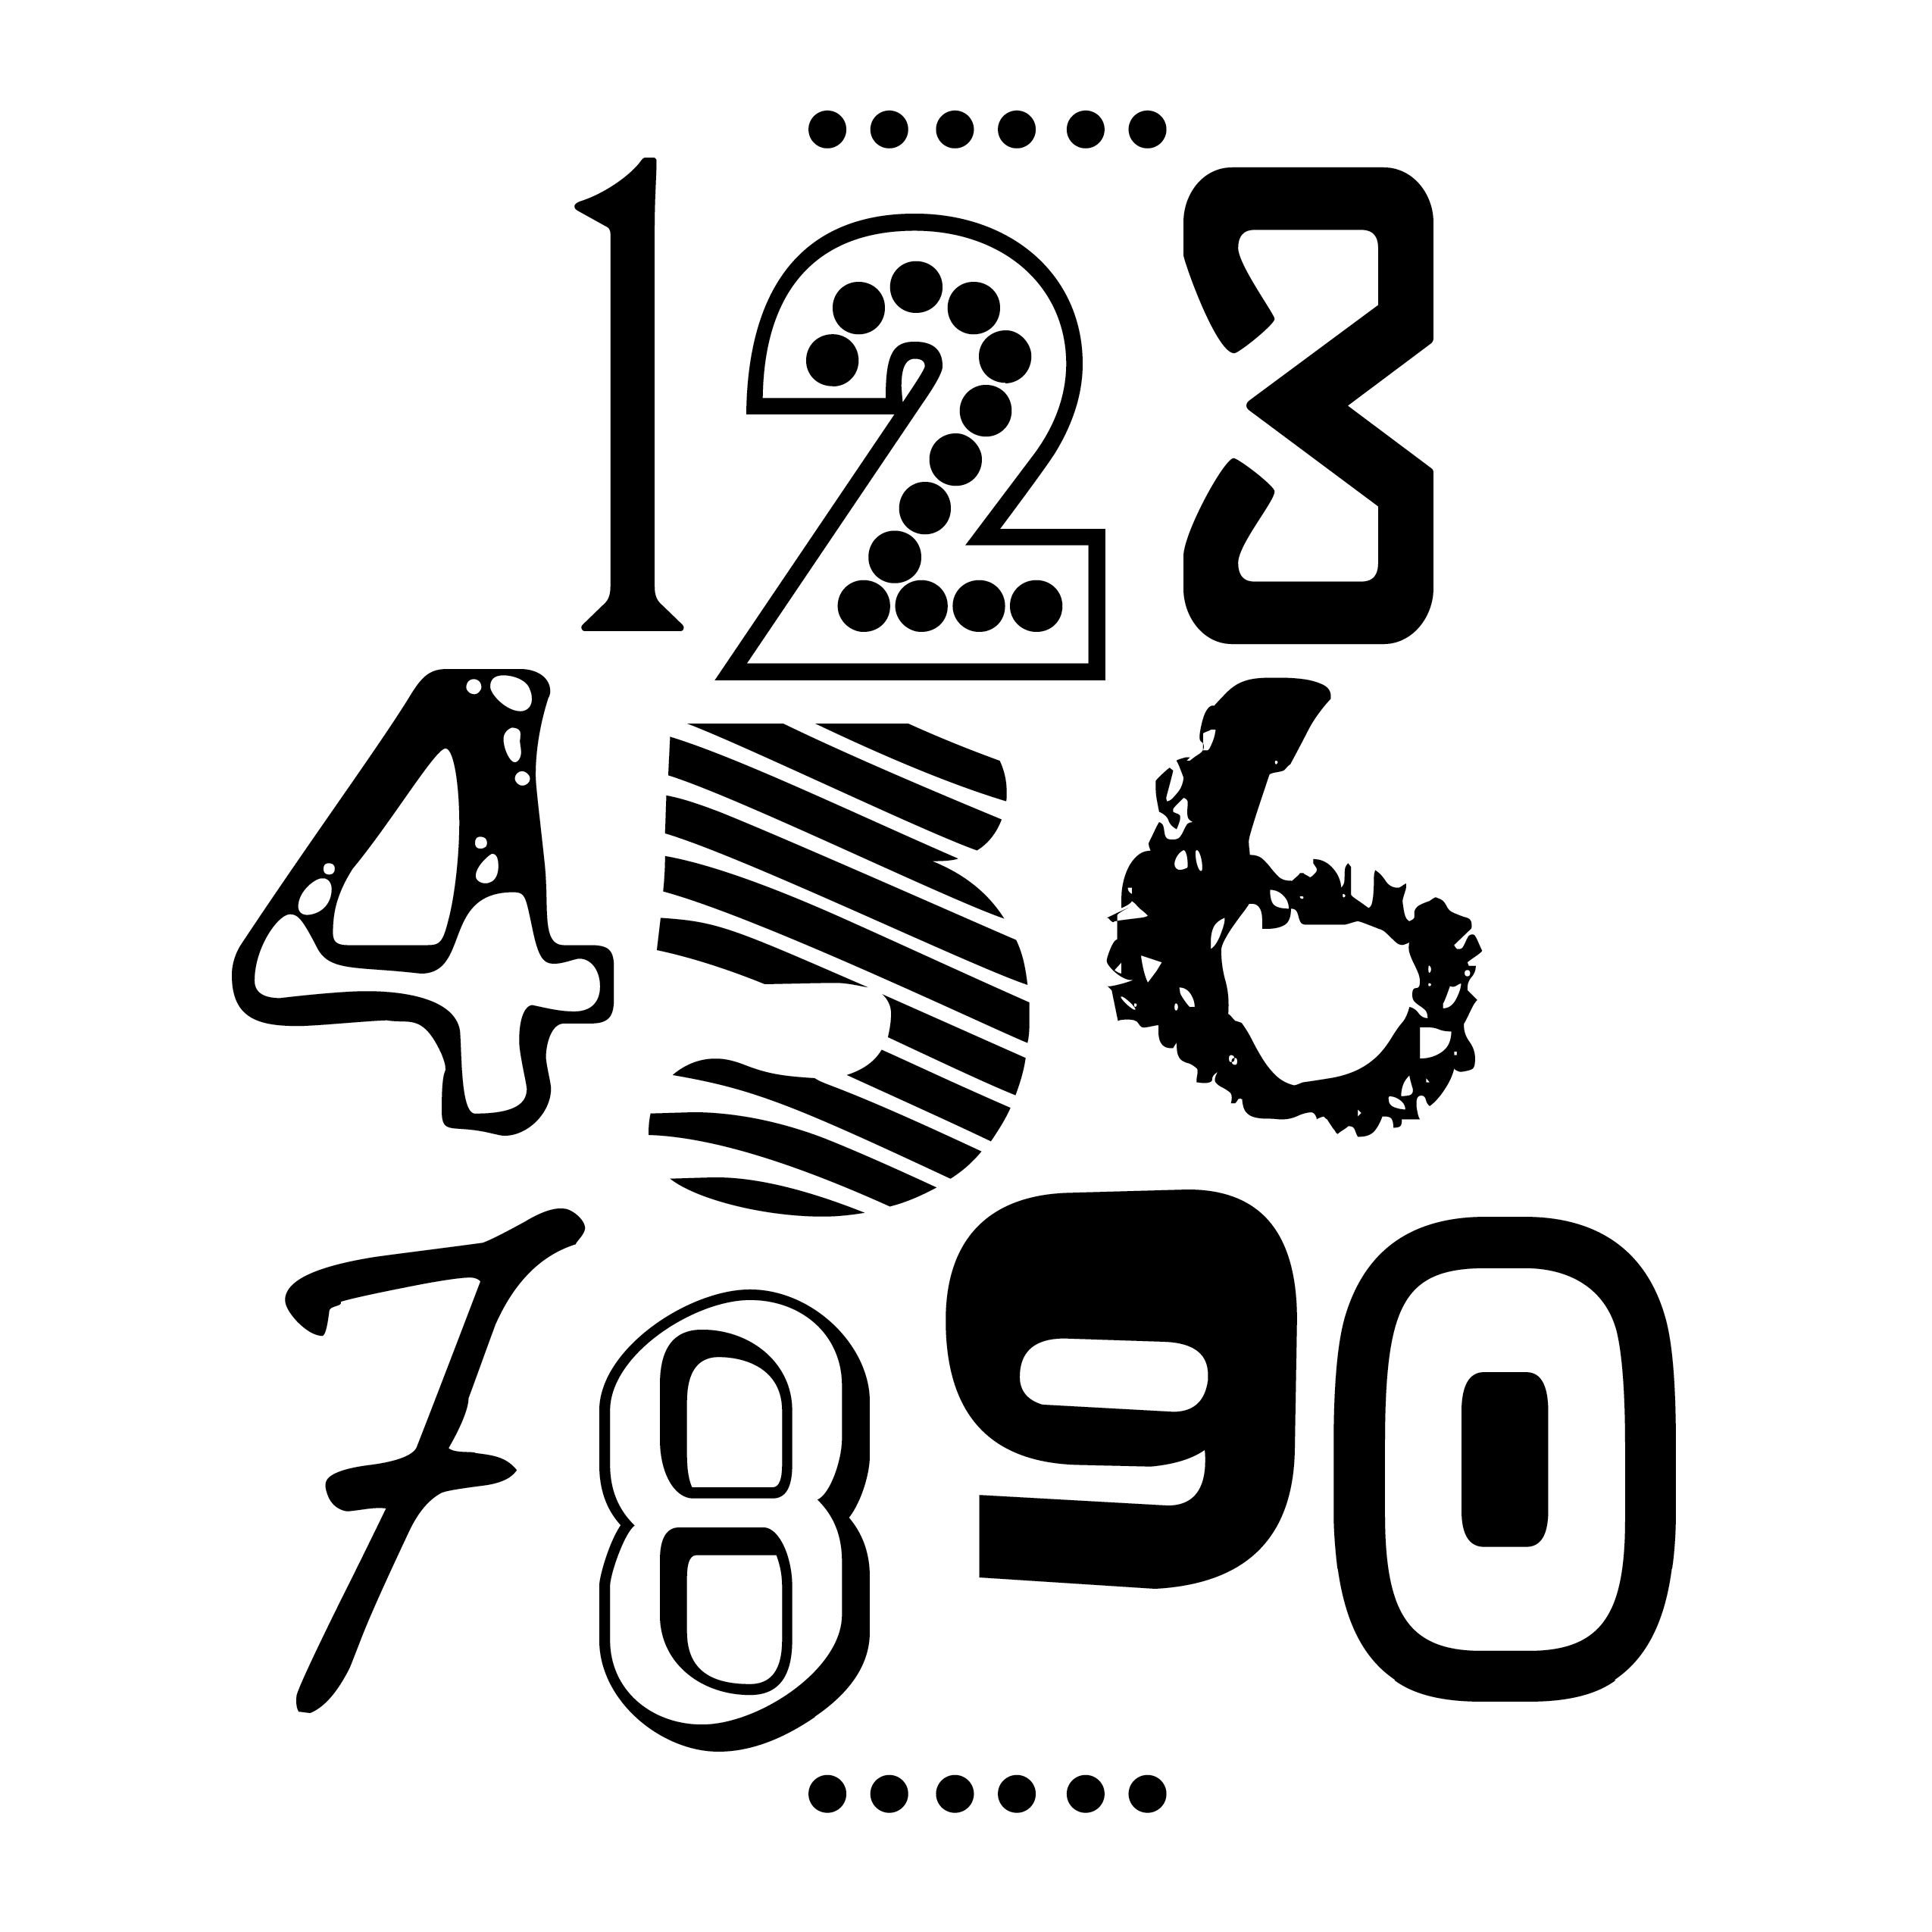 number fonts | Numbers | Graphic design fonts, Funky fonts